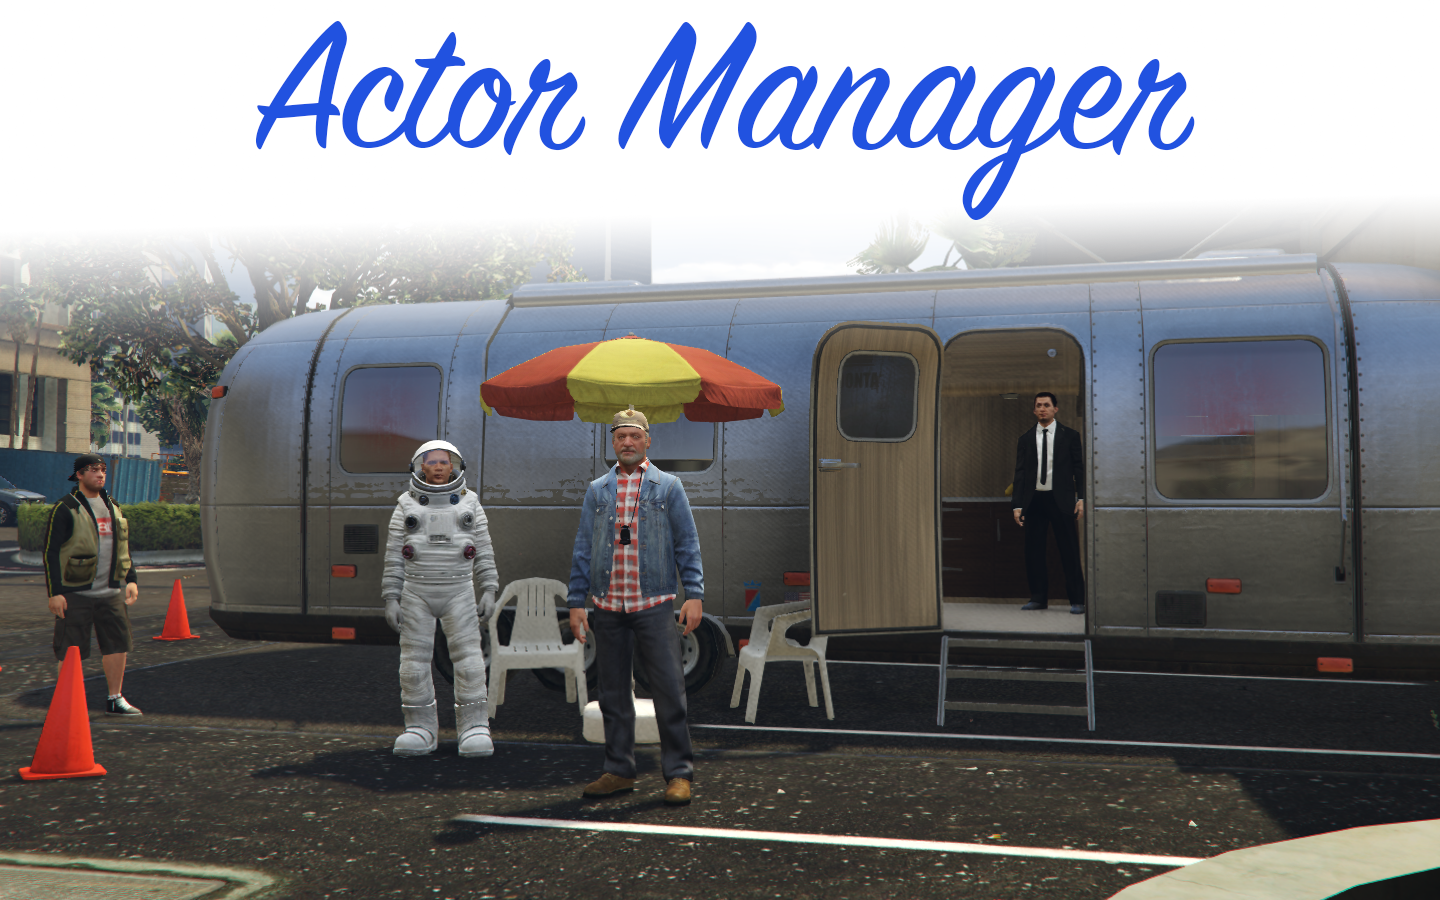 Actor Manager 0.6 - GTA5